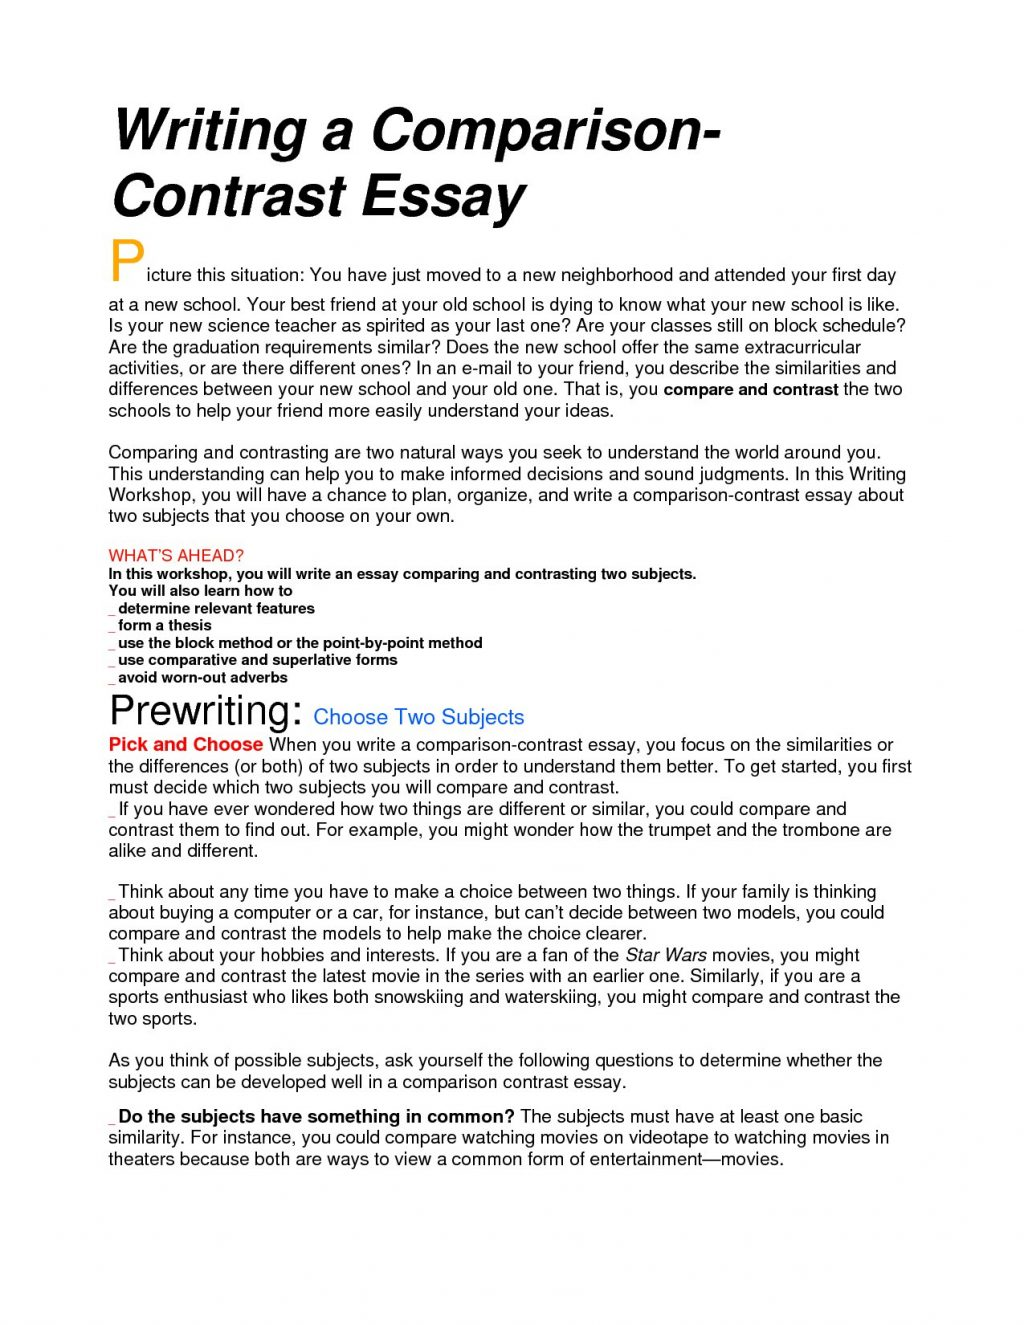 017 Good Compare And Contrast Essay Topics Sythesis Of Nanopolymeric Cheapsis Statement Proofreading For High Schoolents Photo Comparison Essays Esl How To Teach Exceptional Elementary Students In The Medical Field Full